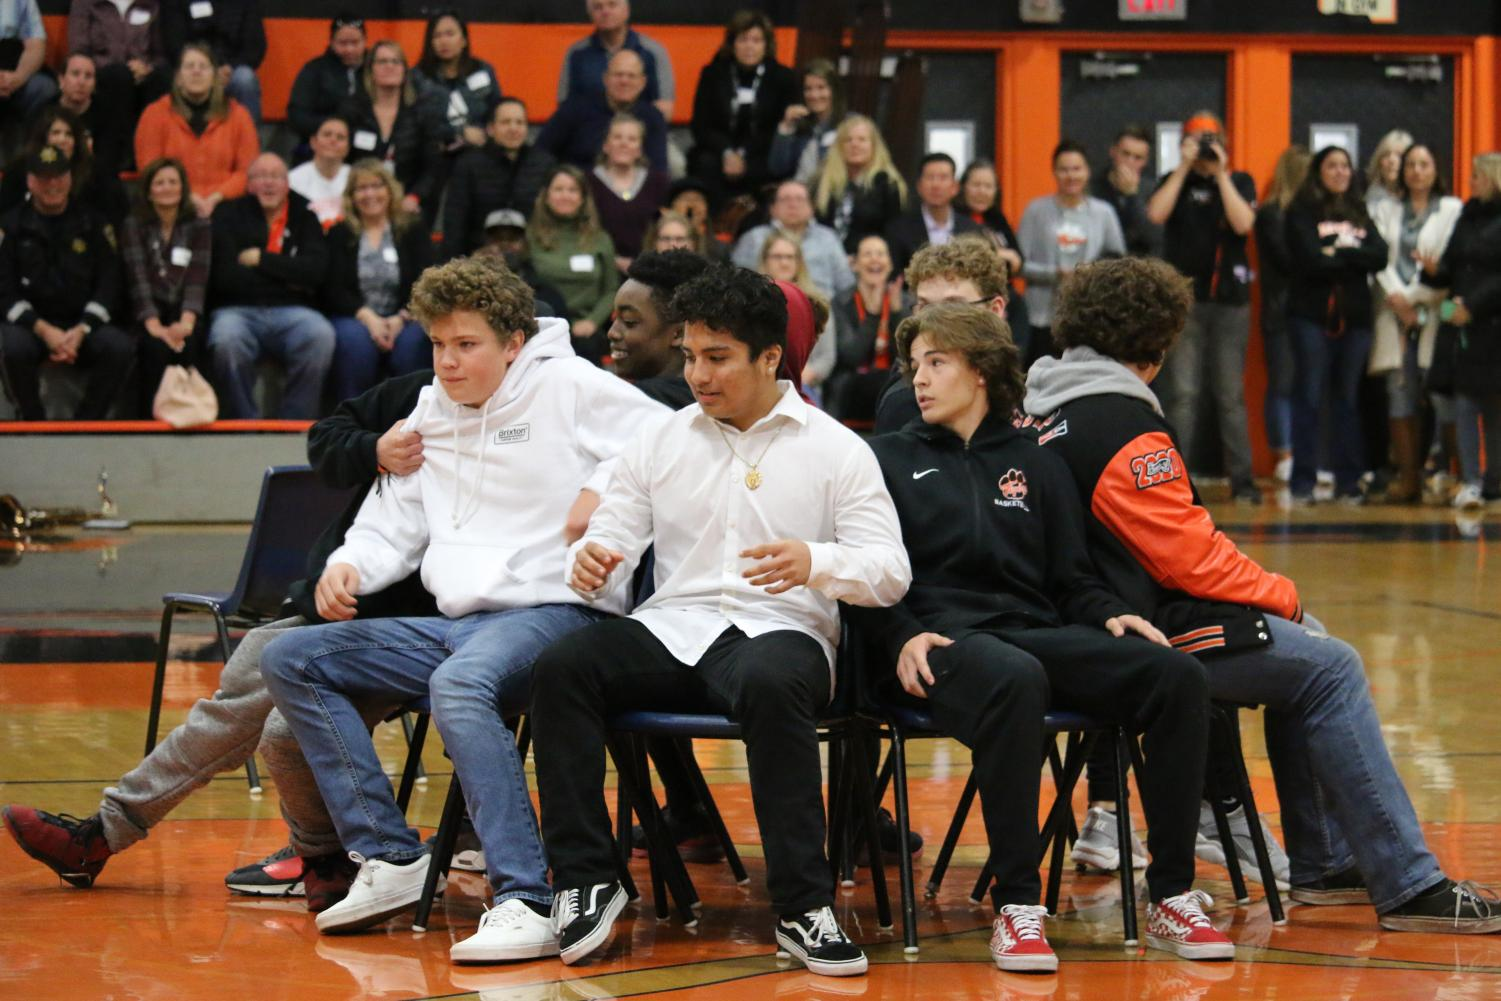 Students+from+various+grades+compete+in+musical+chairs+at+the+Casaba+rally.+